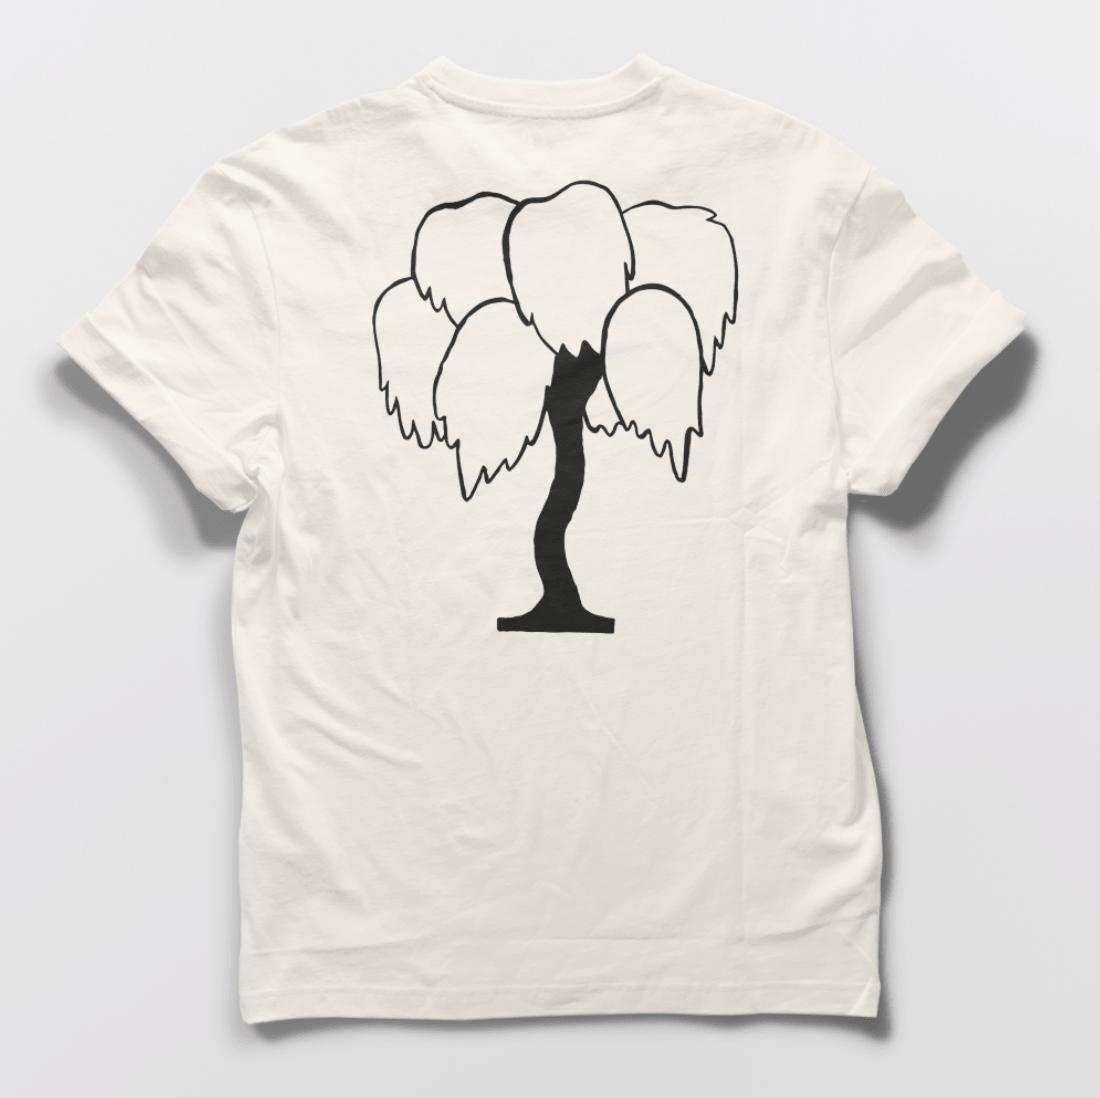 A white T-shirt with a black painting of a tree on the back